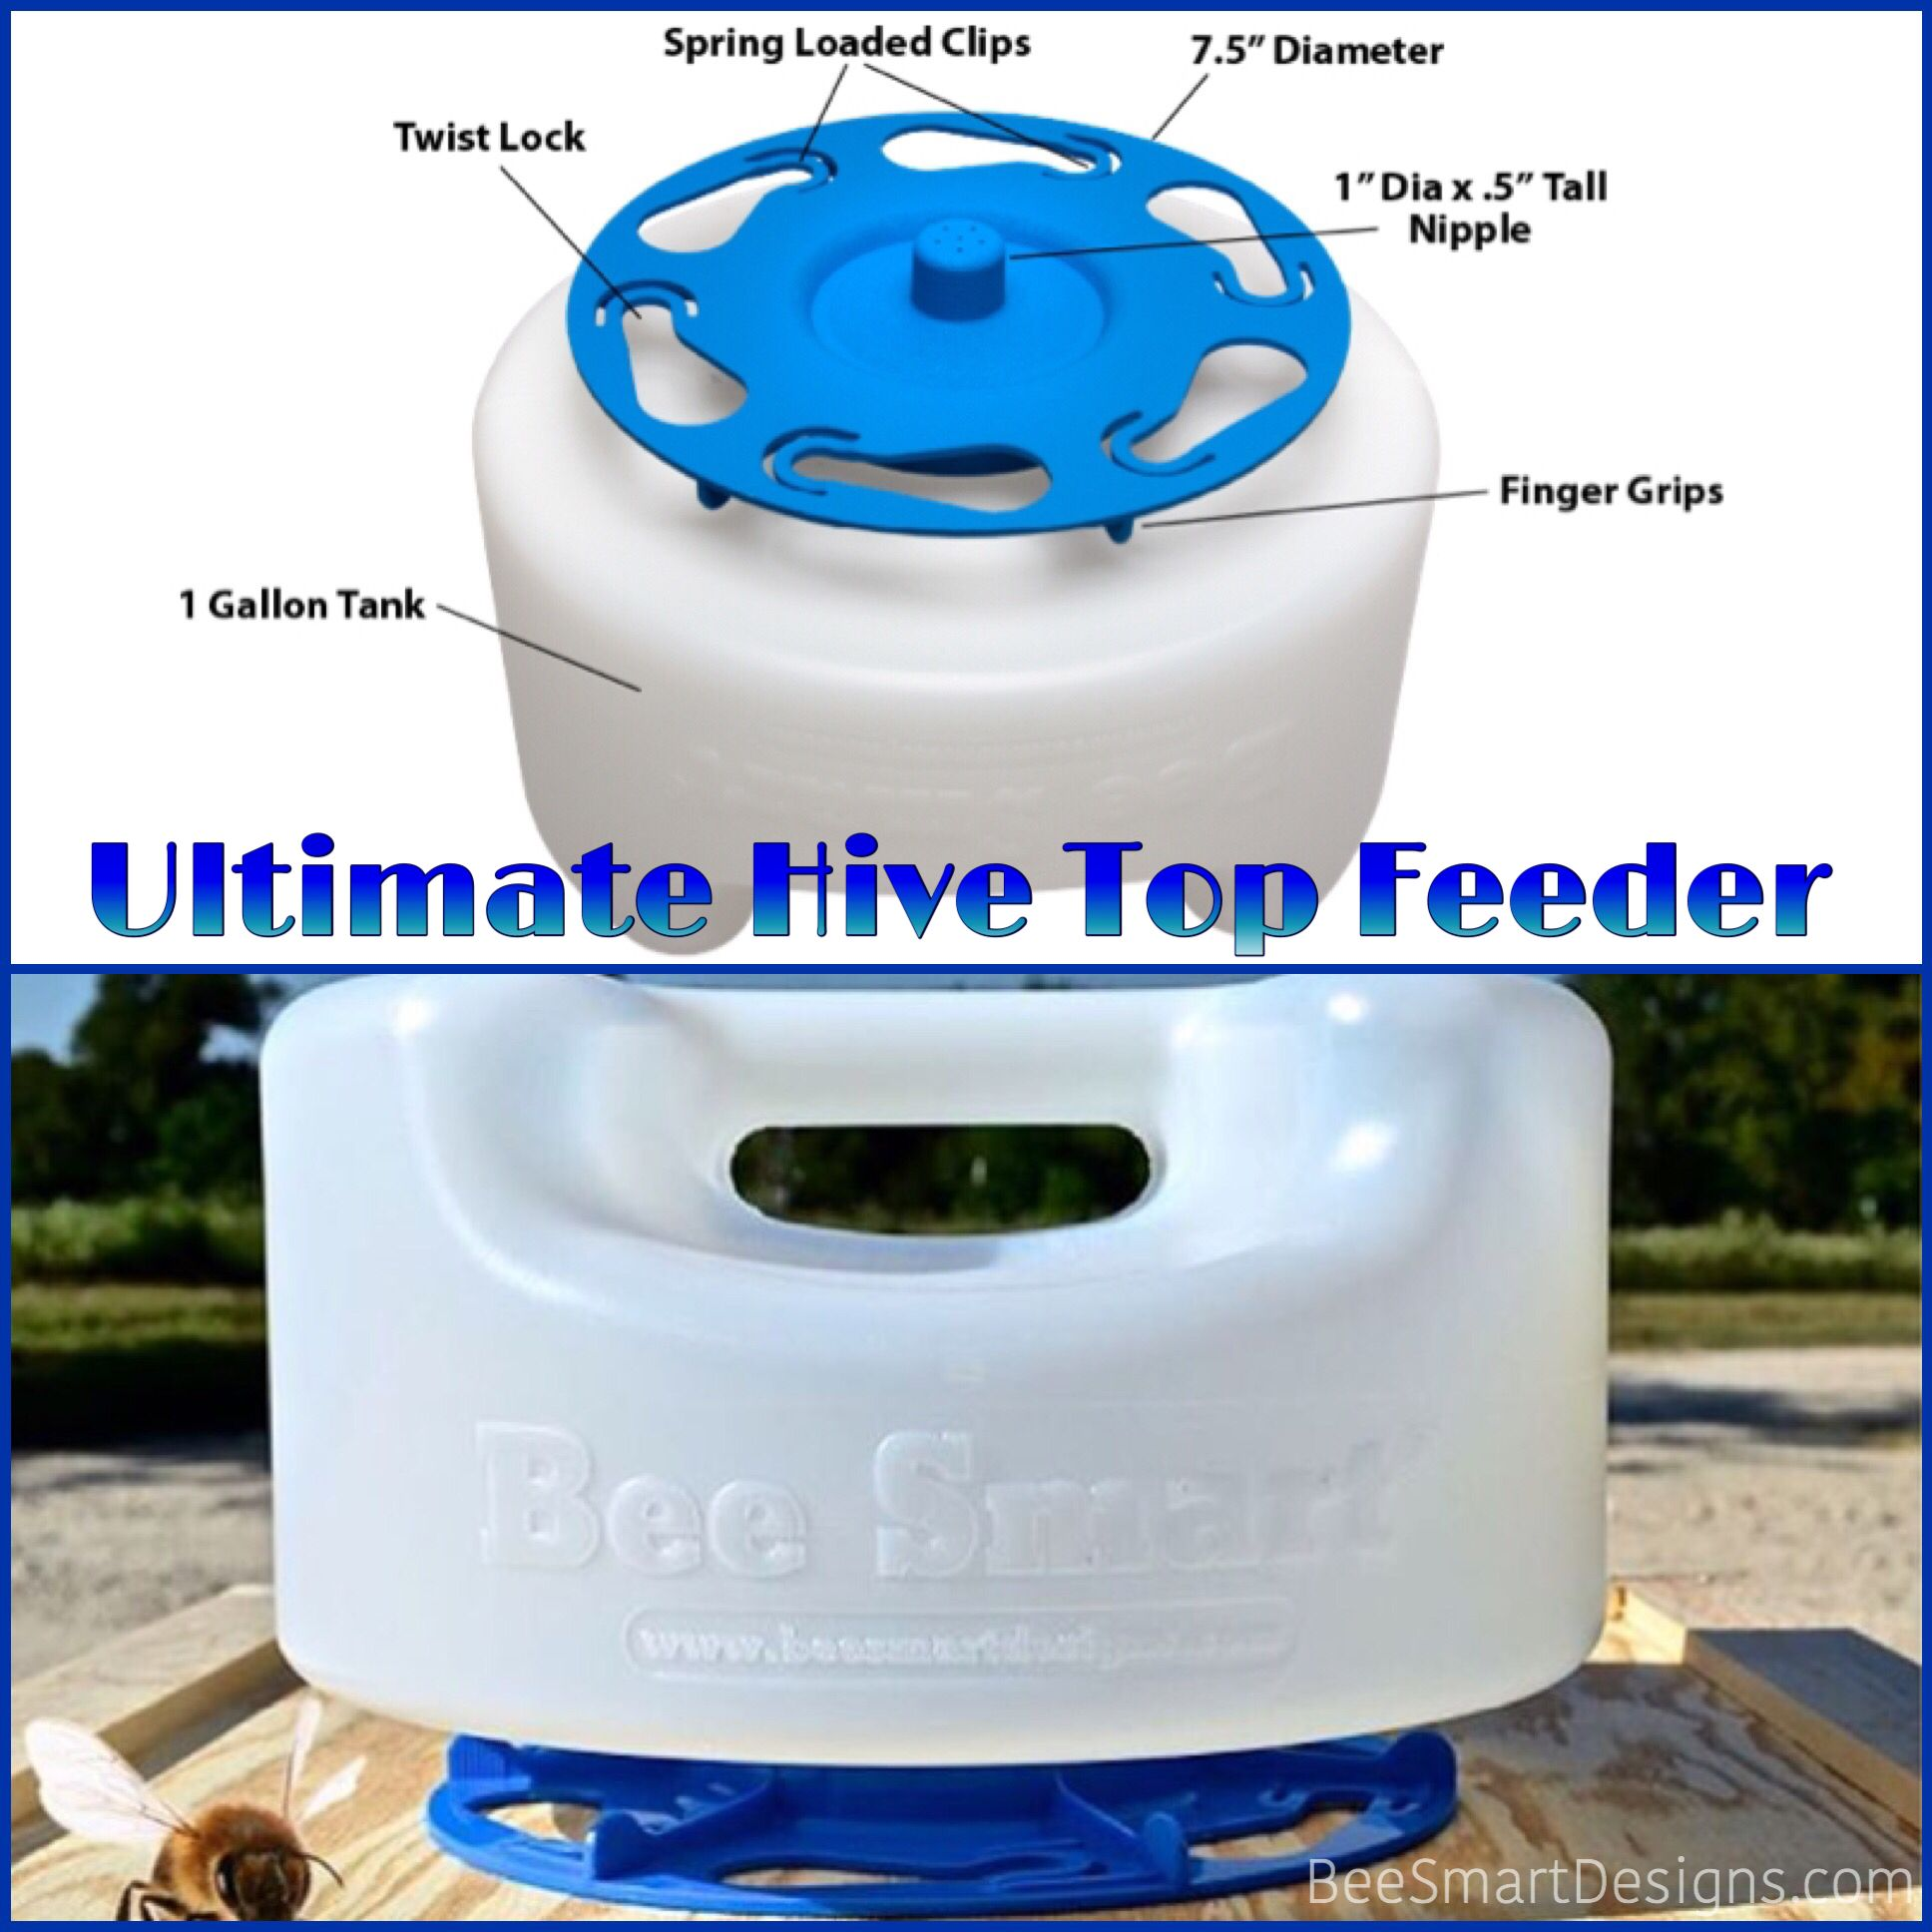 Find out why our Ultimate Hive Top Feeder is better than